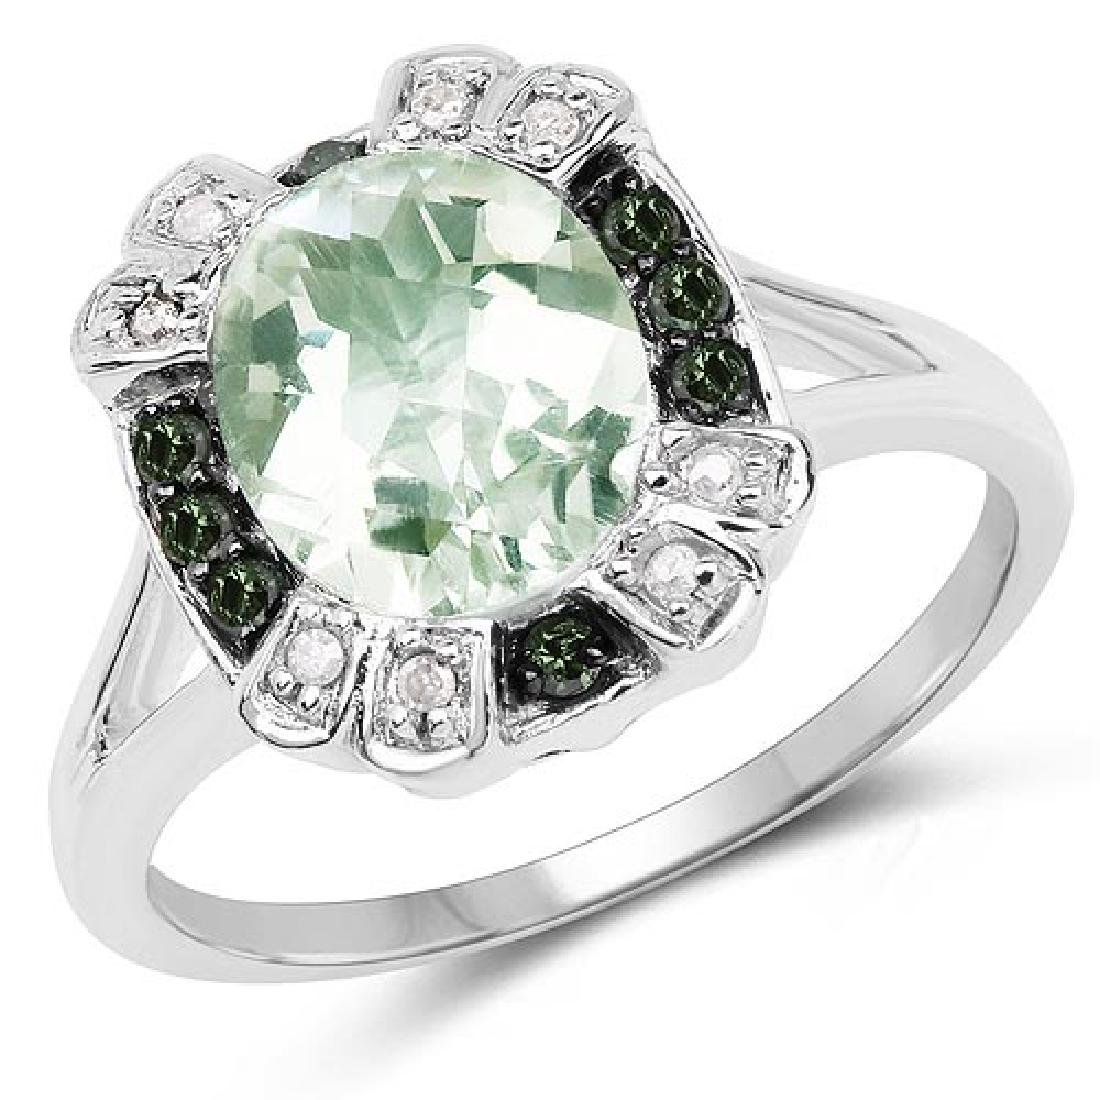 2.82 Carat Genuine Green Amethyst Green Diamond and Wh